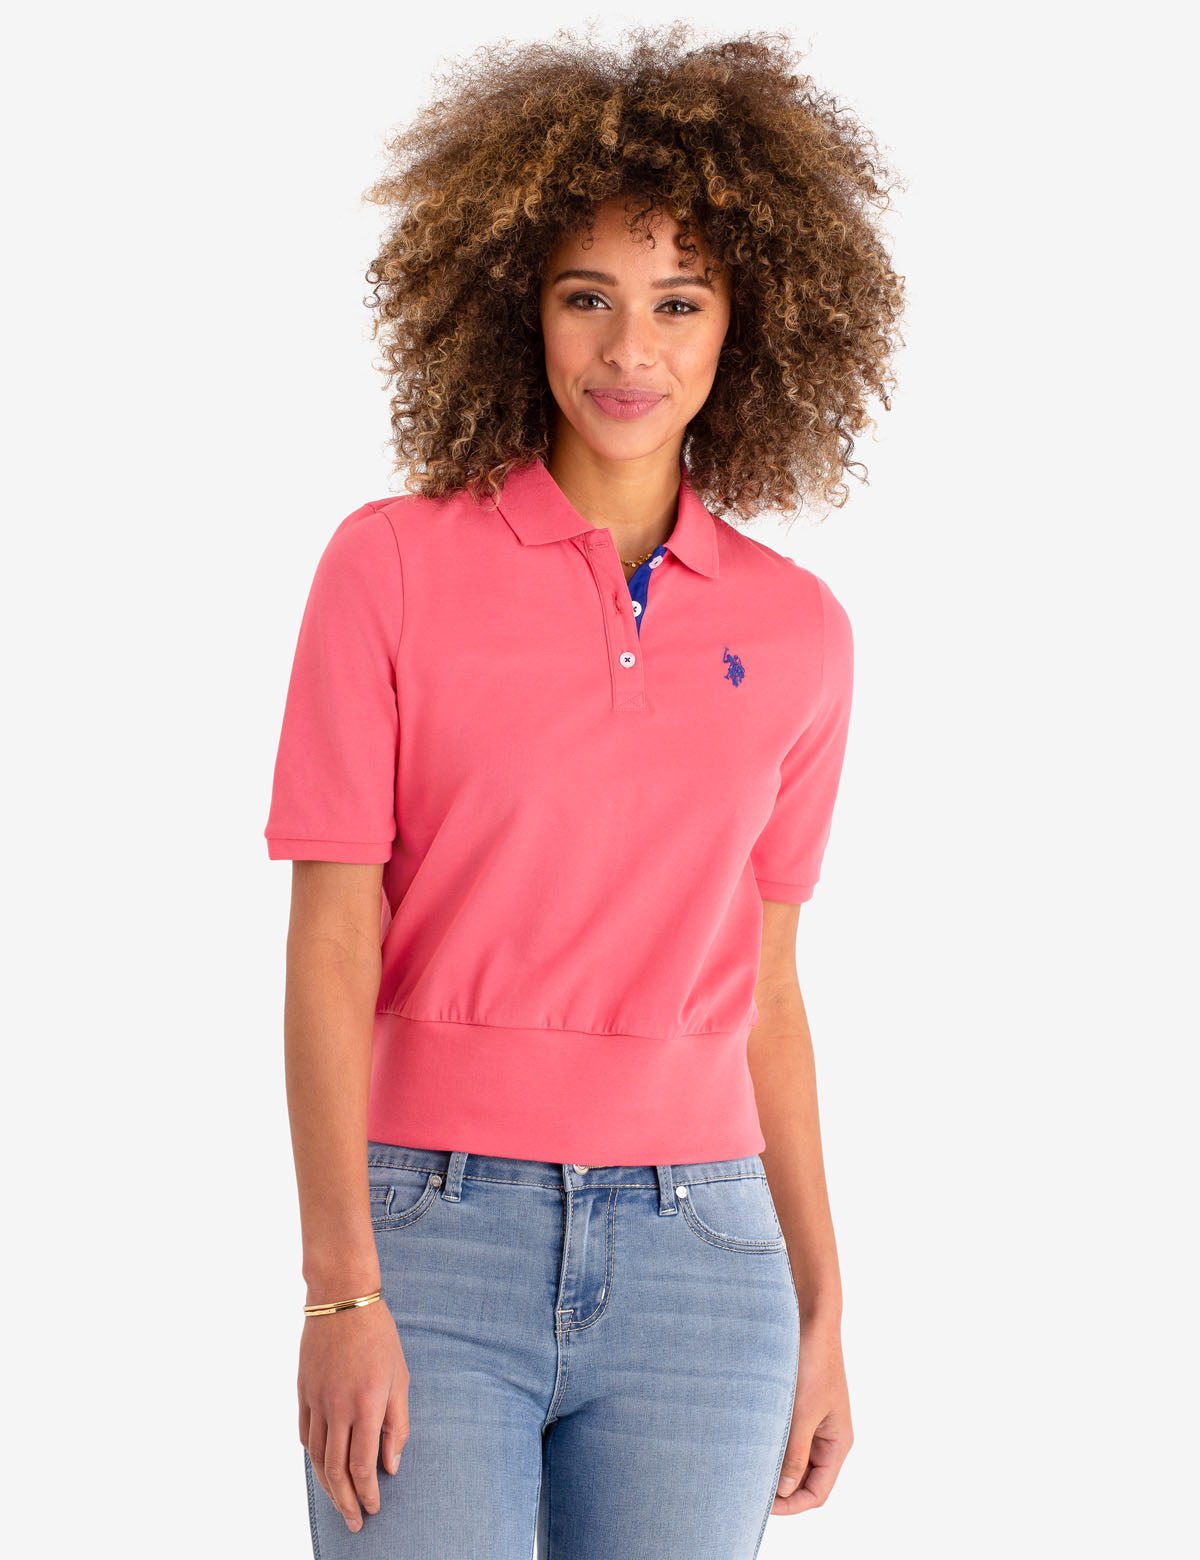 RIBBED HEM POLO SHIRT - U.S. Polo Assn.